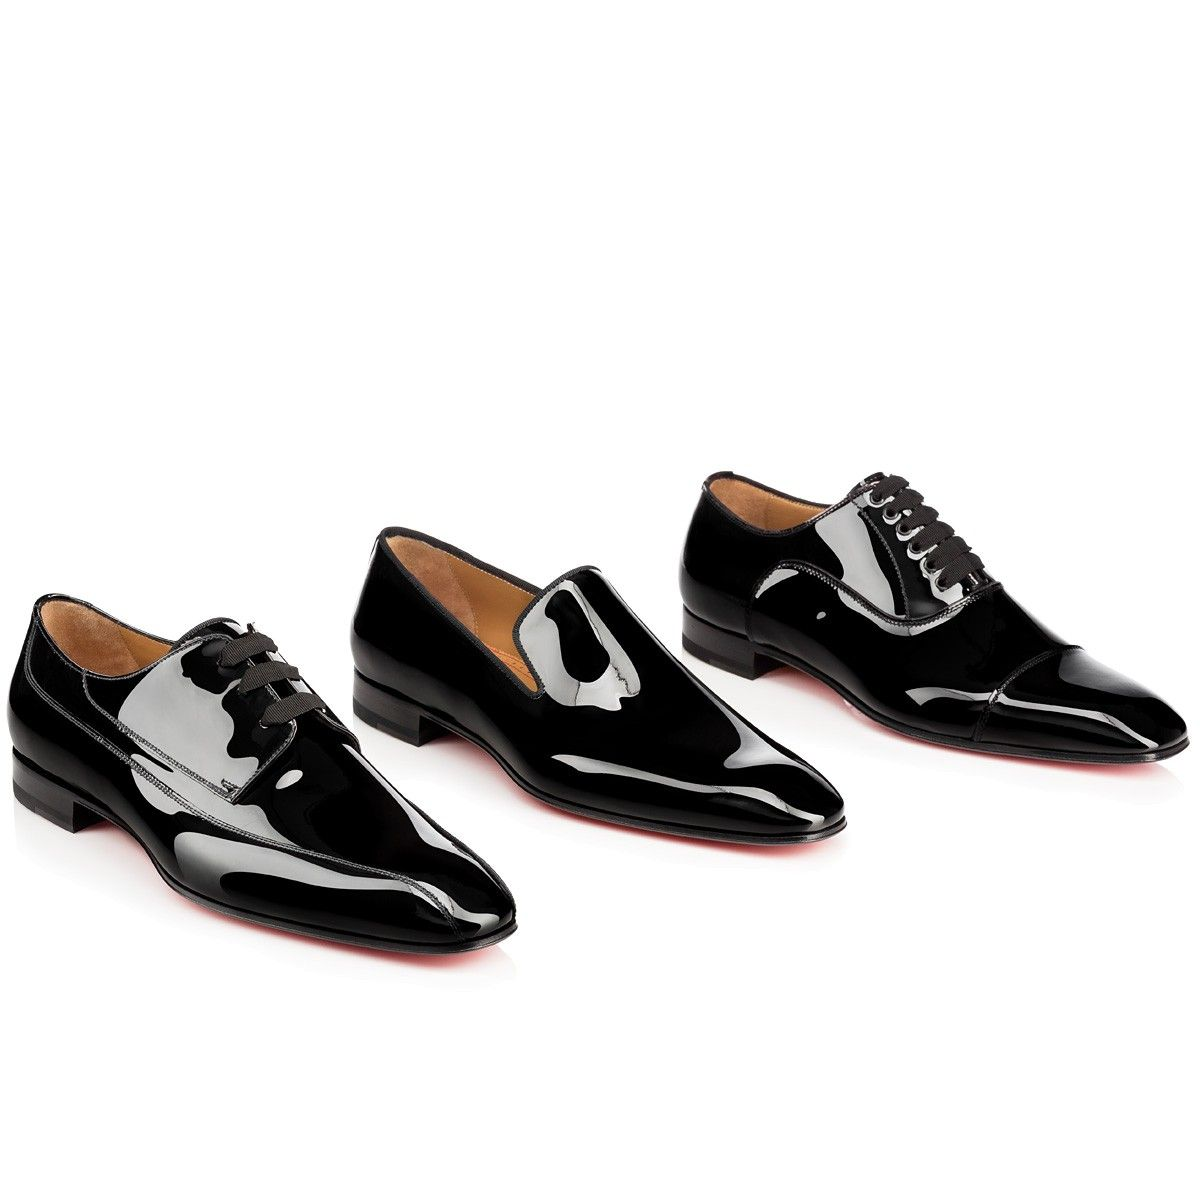 Men Shoes - Orleaness Patent - Christian Louboutin